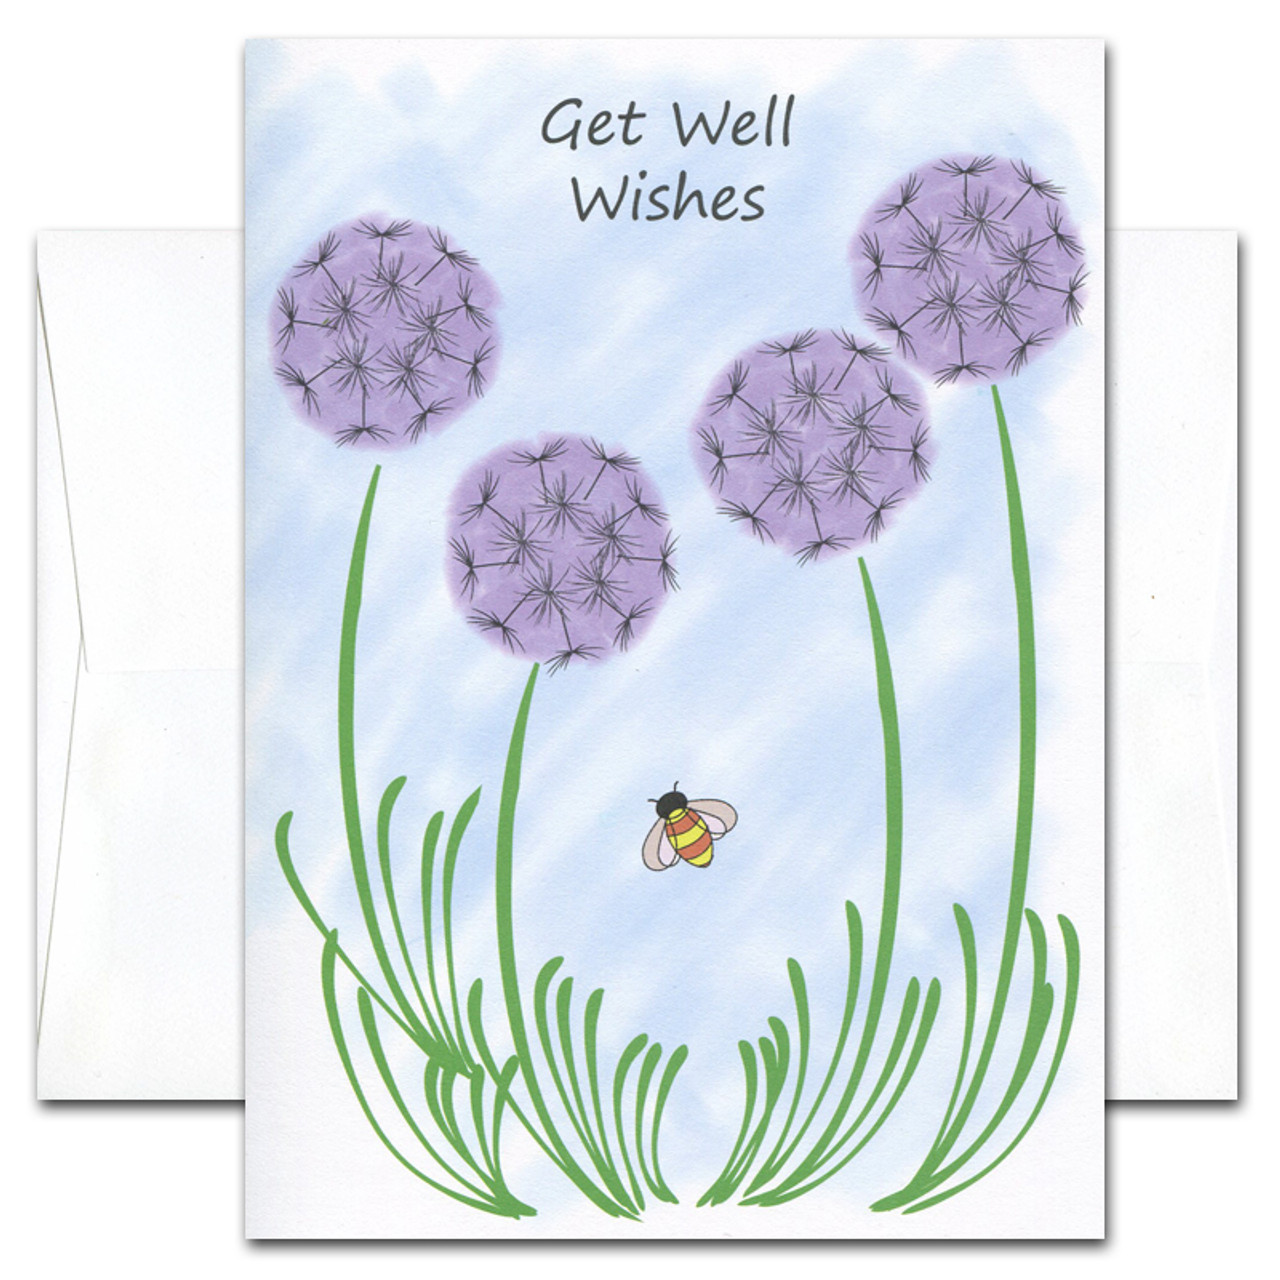 "Get Well Card - Wishes cover is an illustration of purple wild flowers on a blue background with a busy bee flying among them and the words ""Get Well Wishes"" near the top"